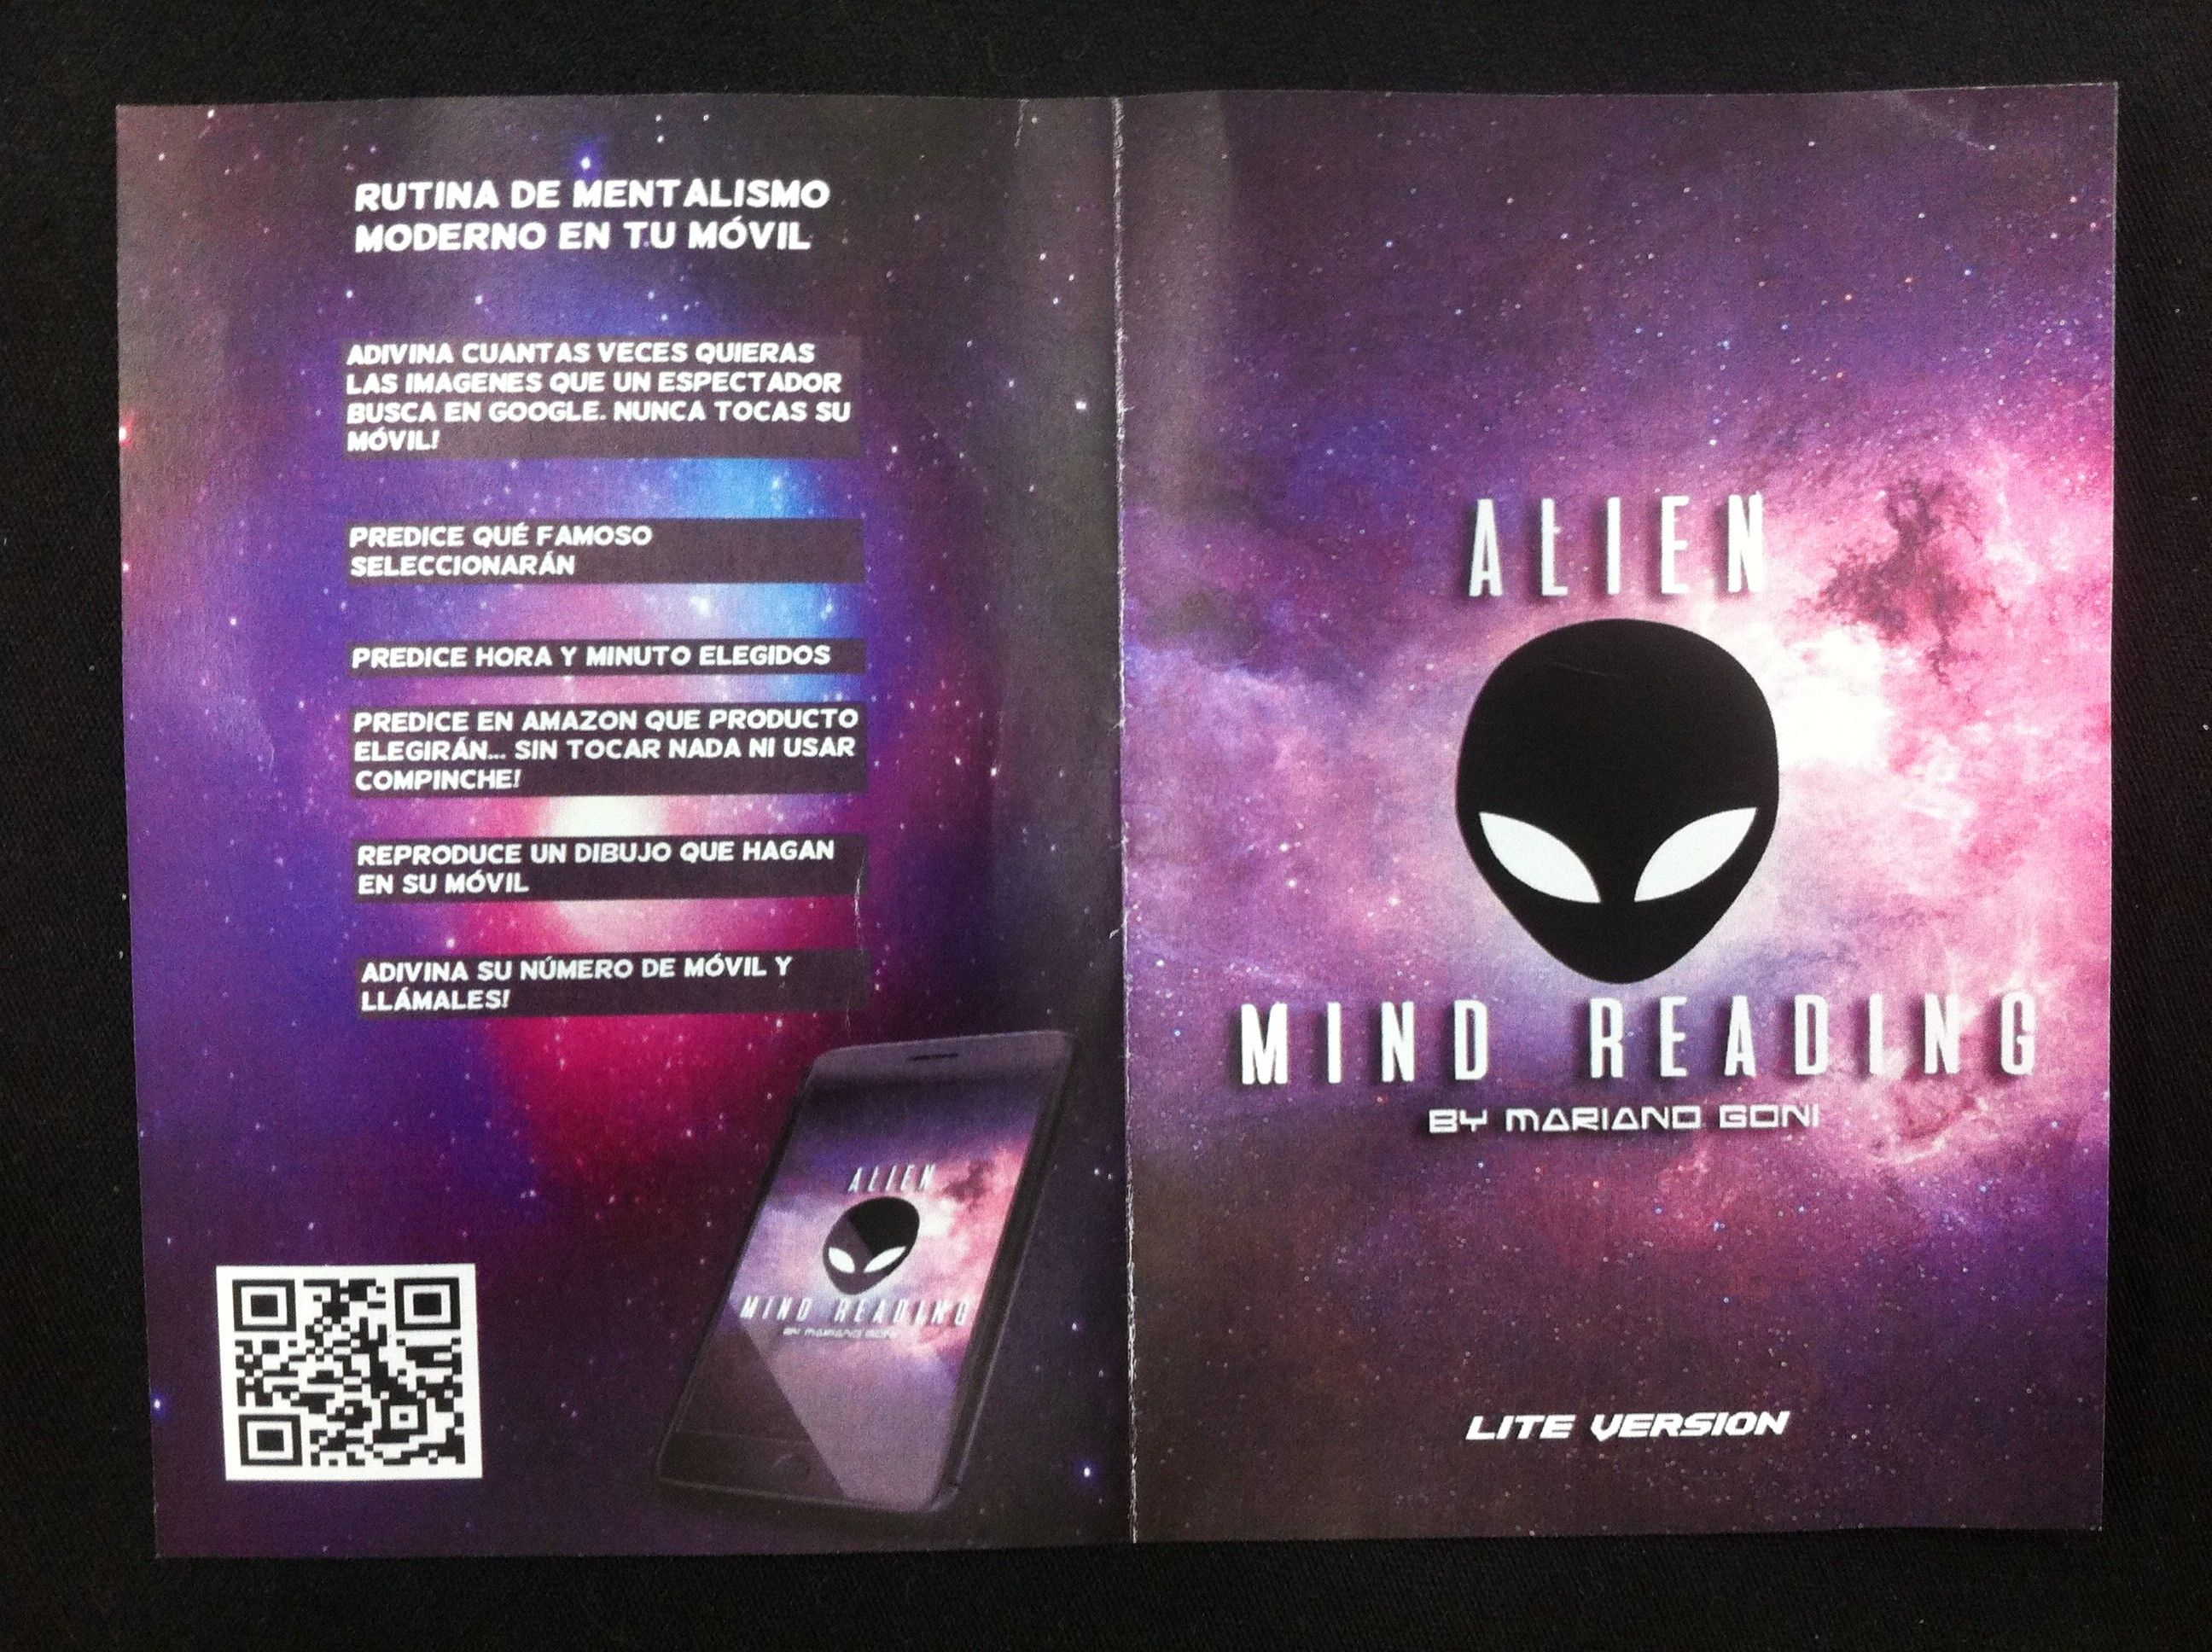 Alien Mind Reading LITE